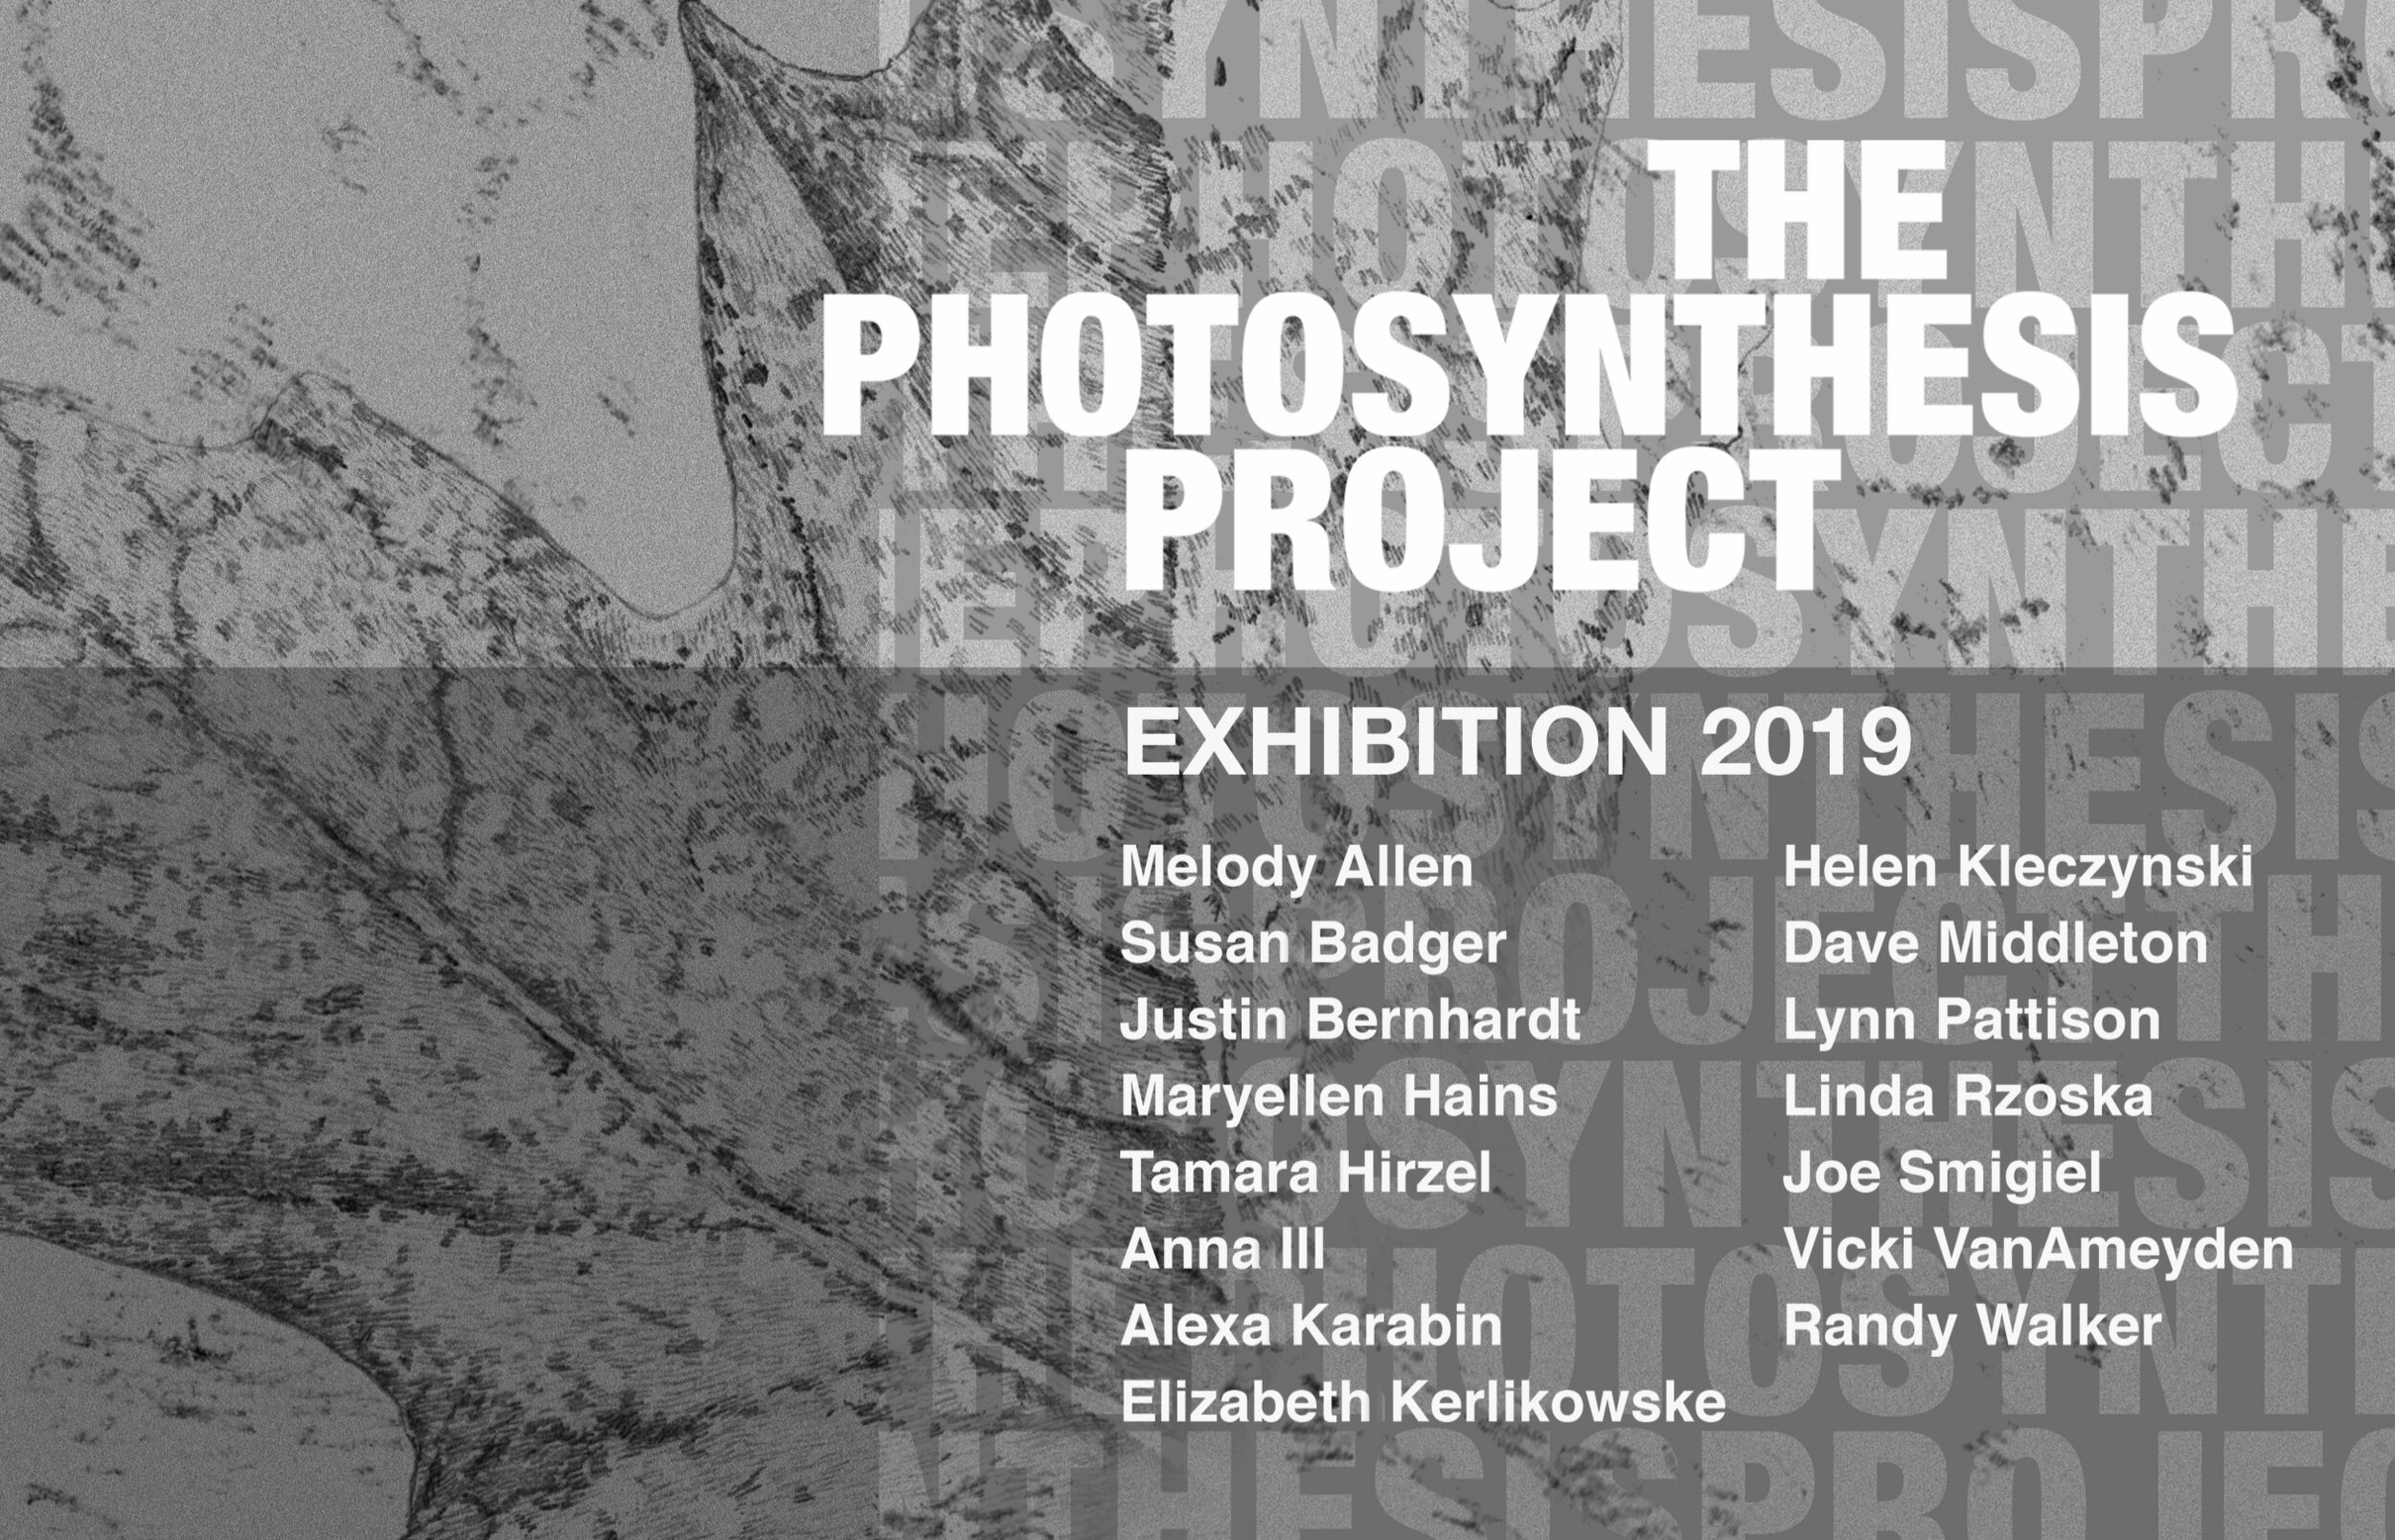 Photosynthesis Exhibition Card1.jpg